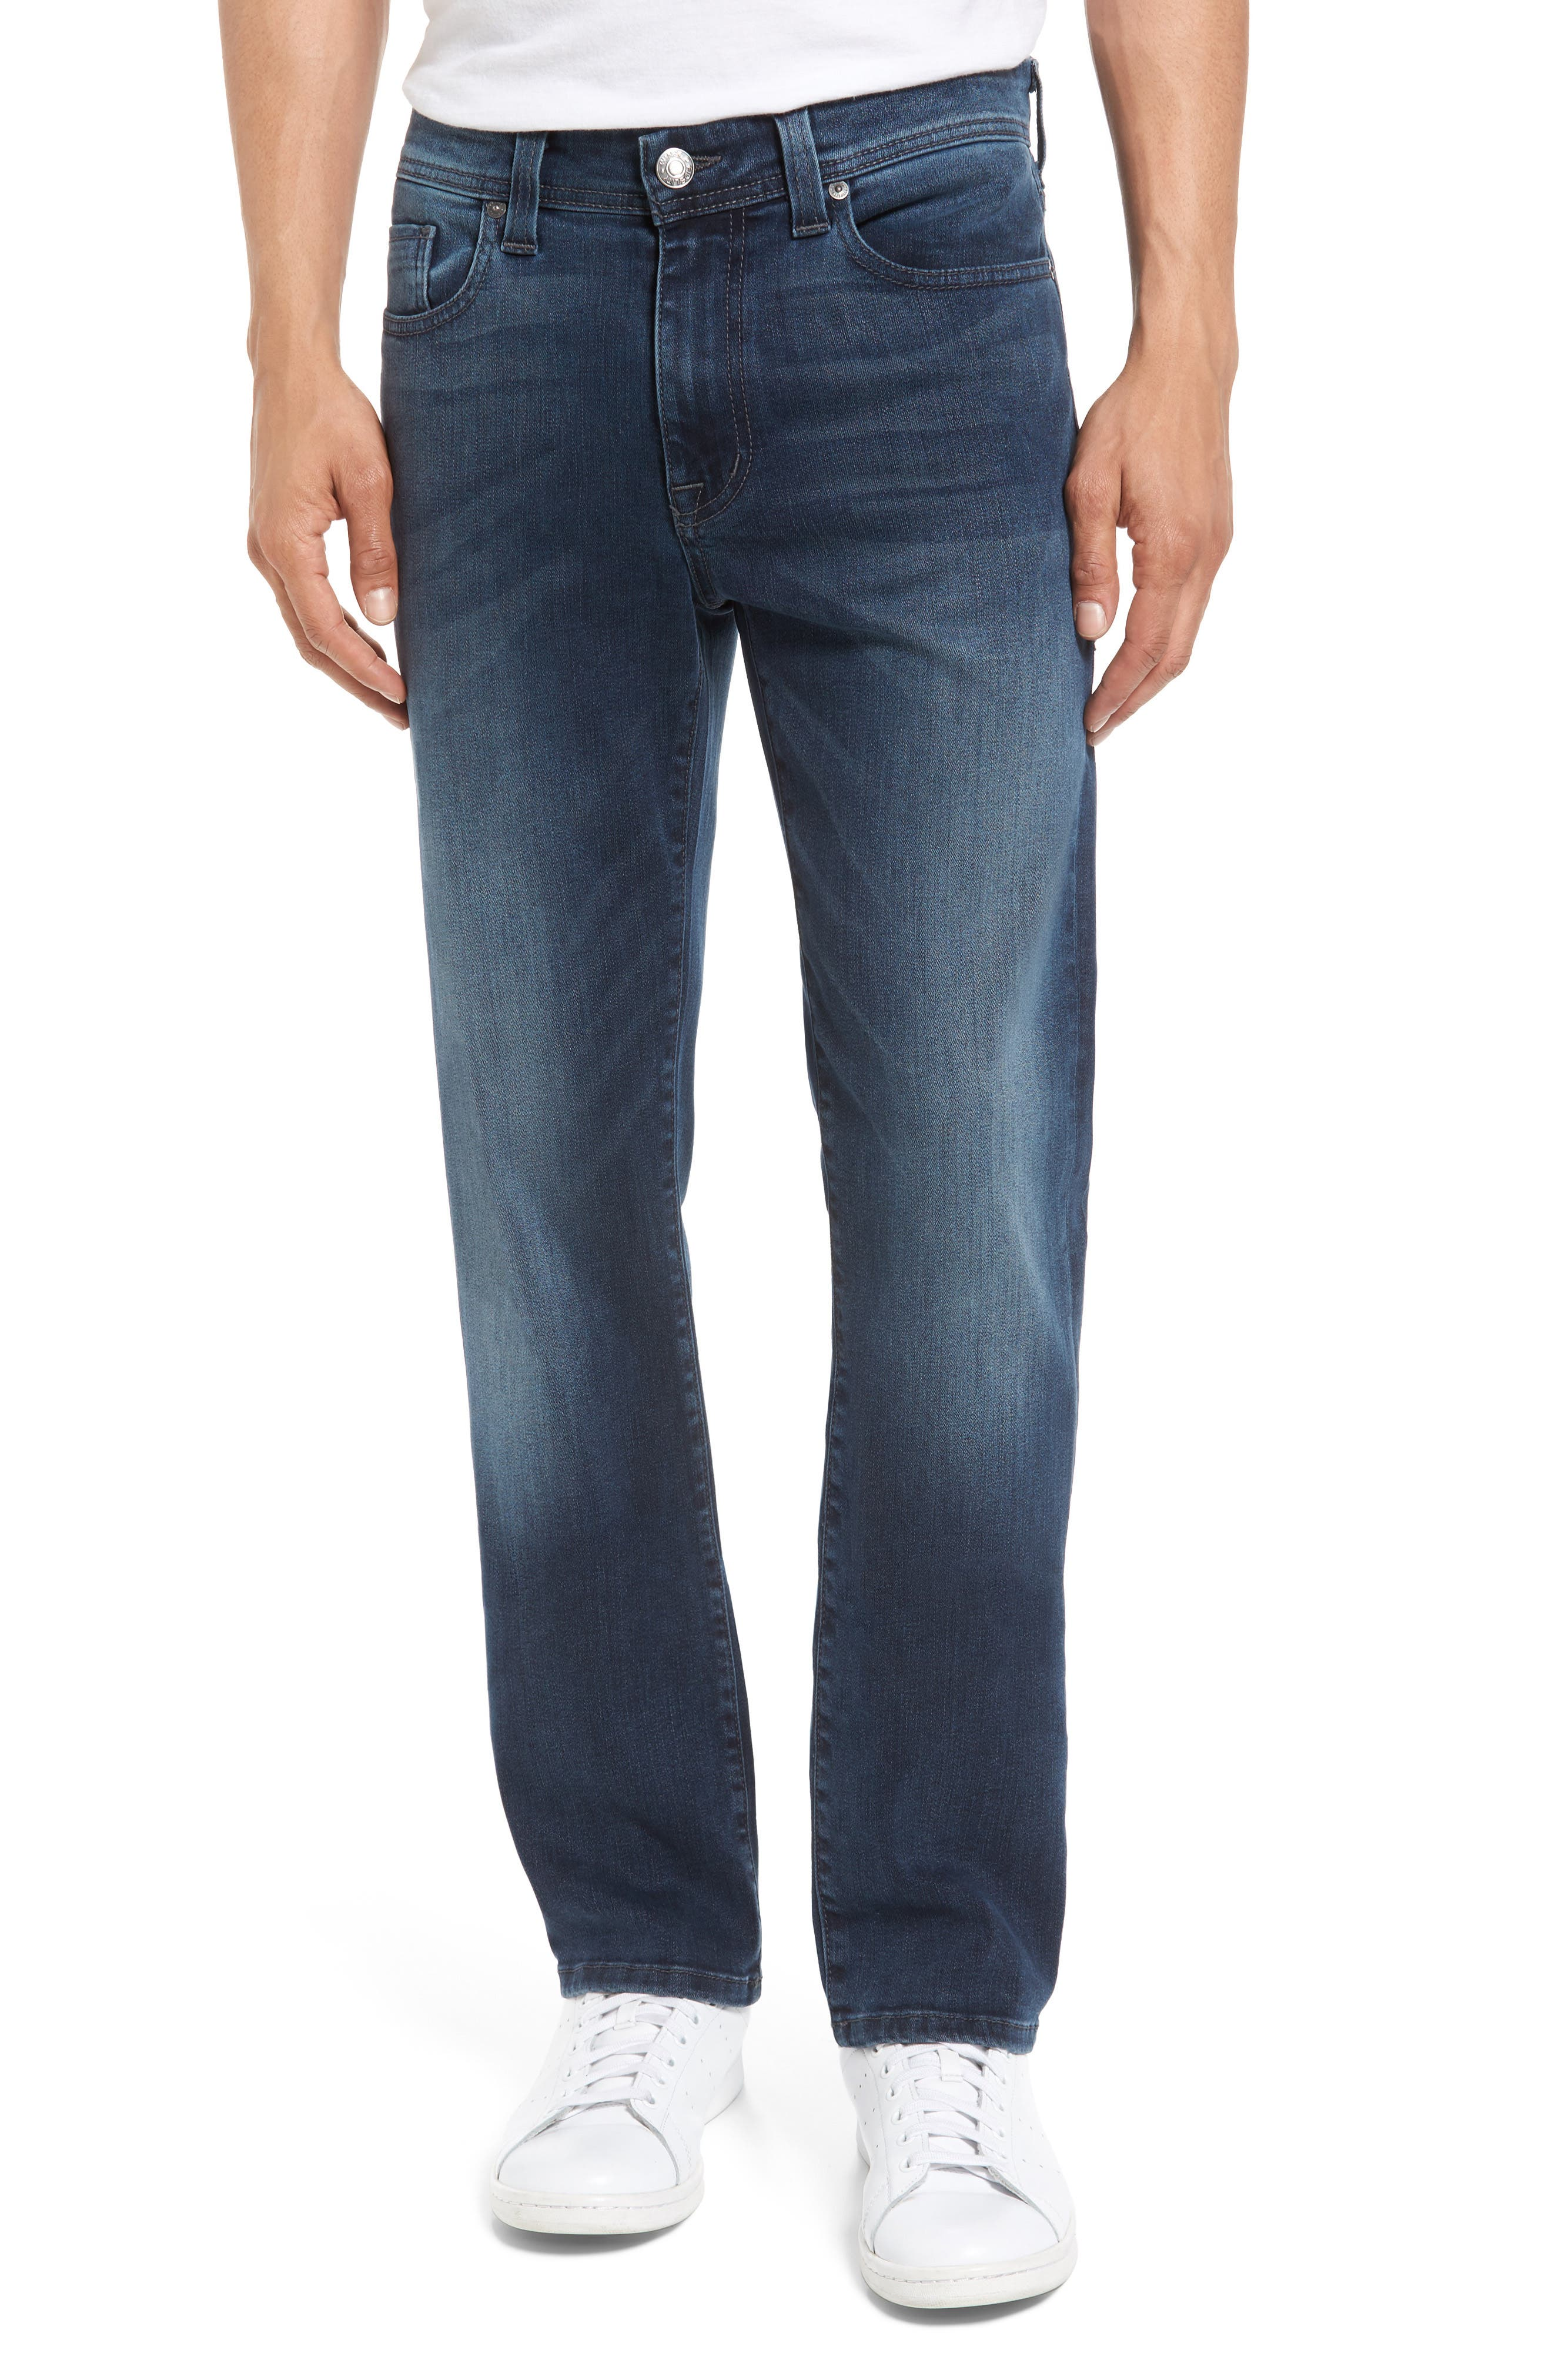 Fidelity Jimmy Slim Straight Leg Jeans,                         Main,                         color, 400